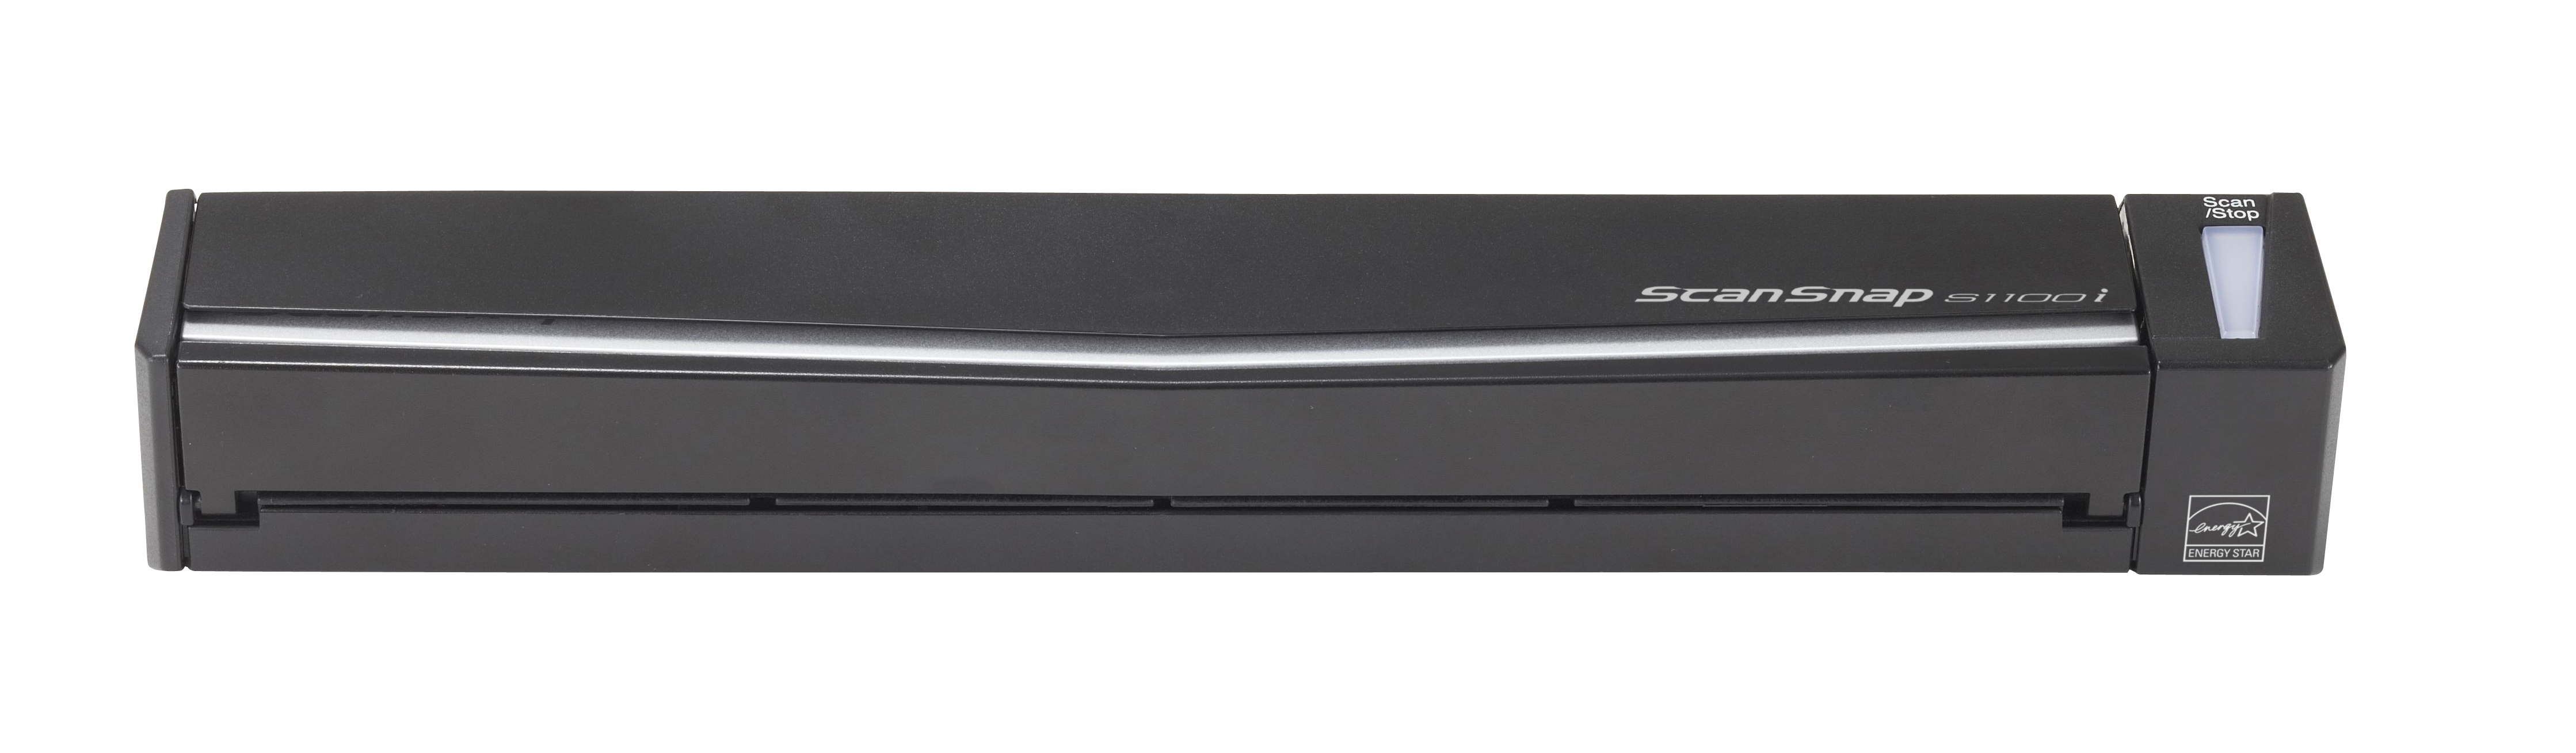 Fujitsu ScanSnap S100i Document Scanning Solution, Format A8 Up To A3, USB 2.0 (cable In The Box), Software For WIN And Mac OS : CardMinder,  Quick Menu,  ABBYY FineReader For ScanSnap, Organ - C2000